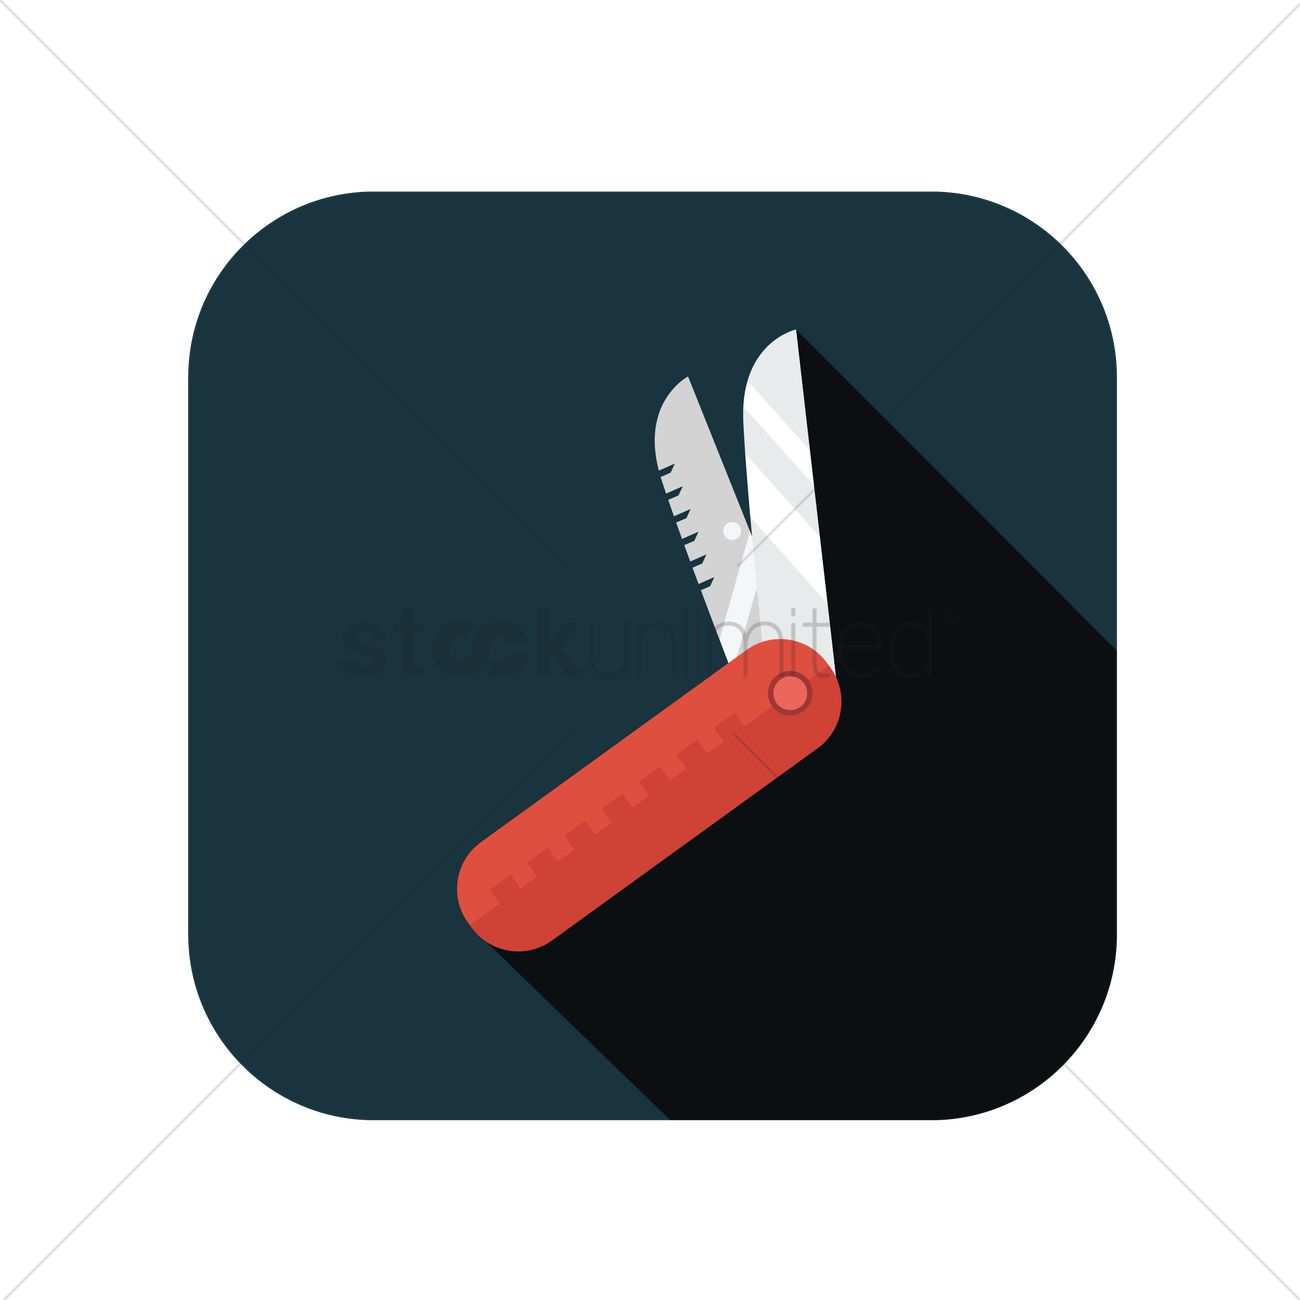 Free Swiss army knife Vector Image - 1284445 | StockUnlimited